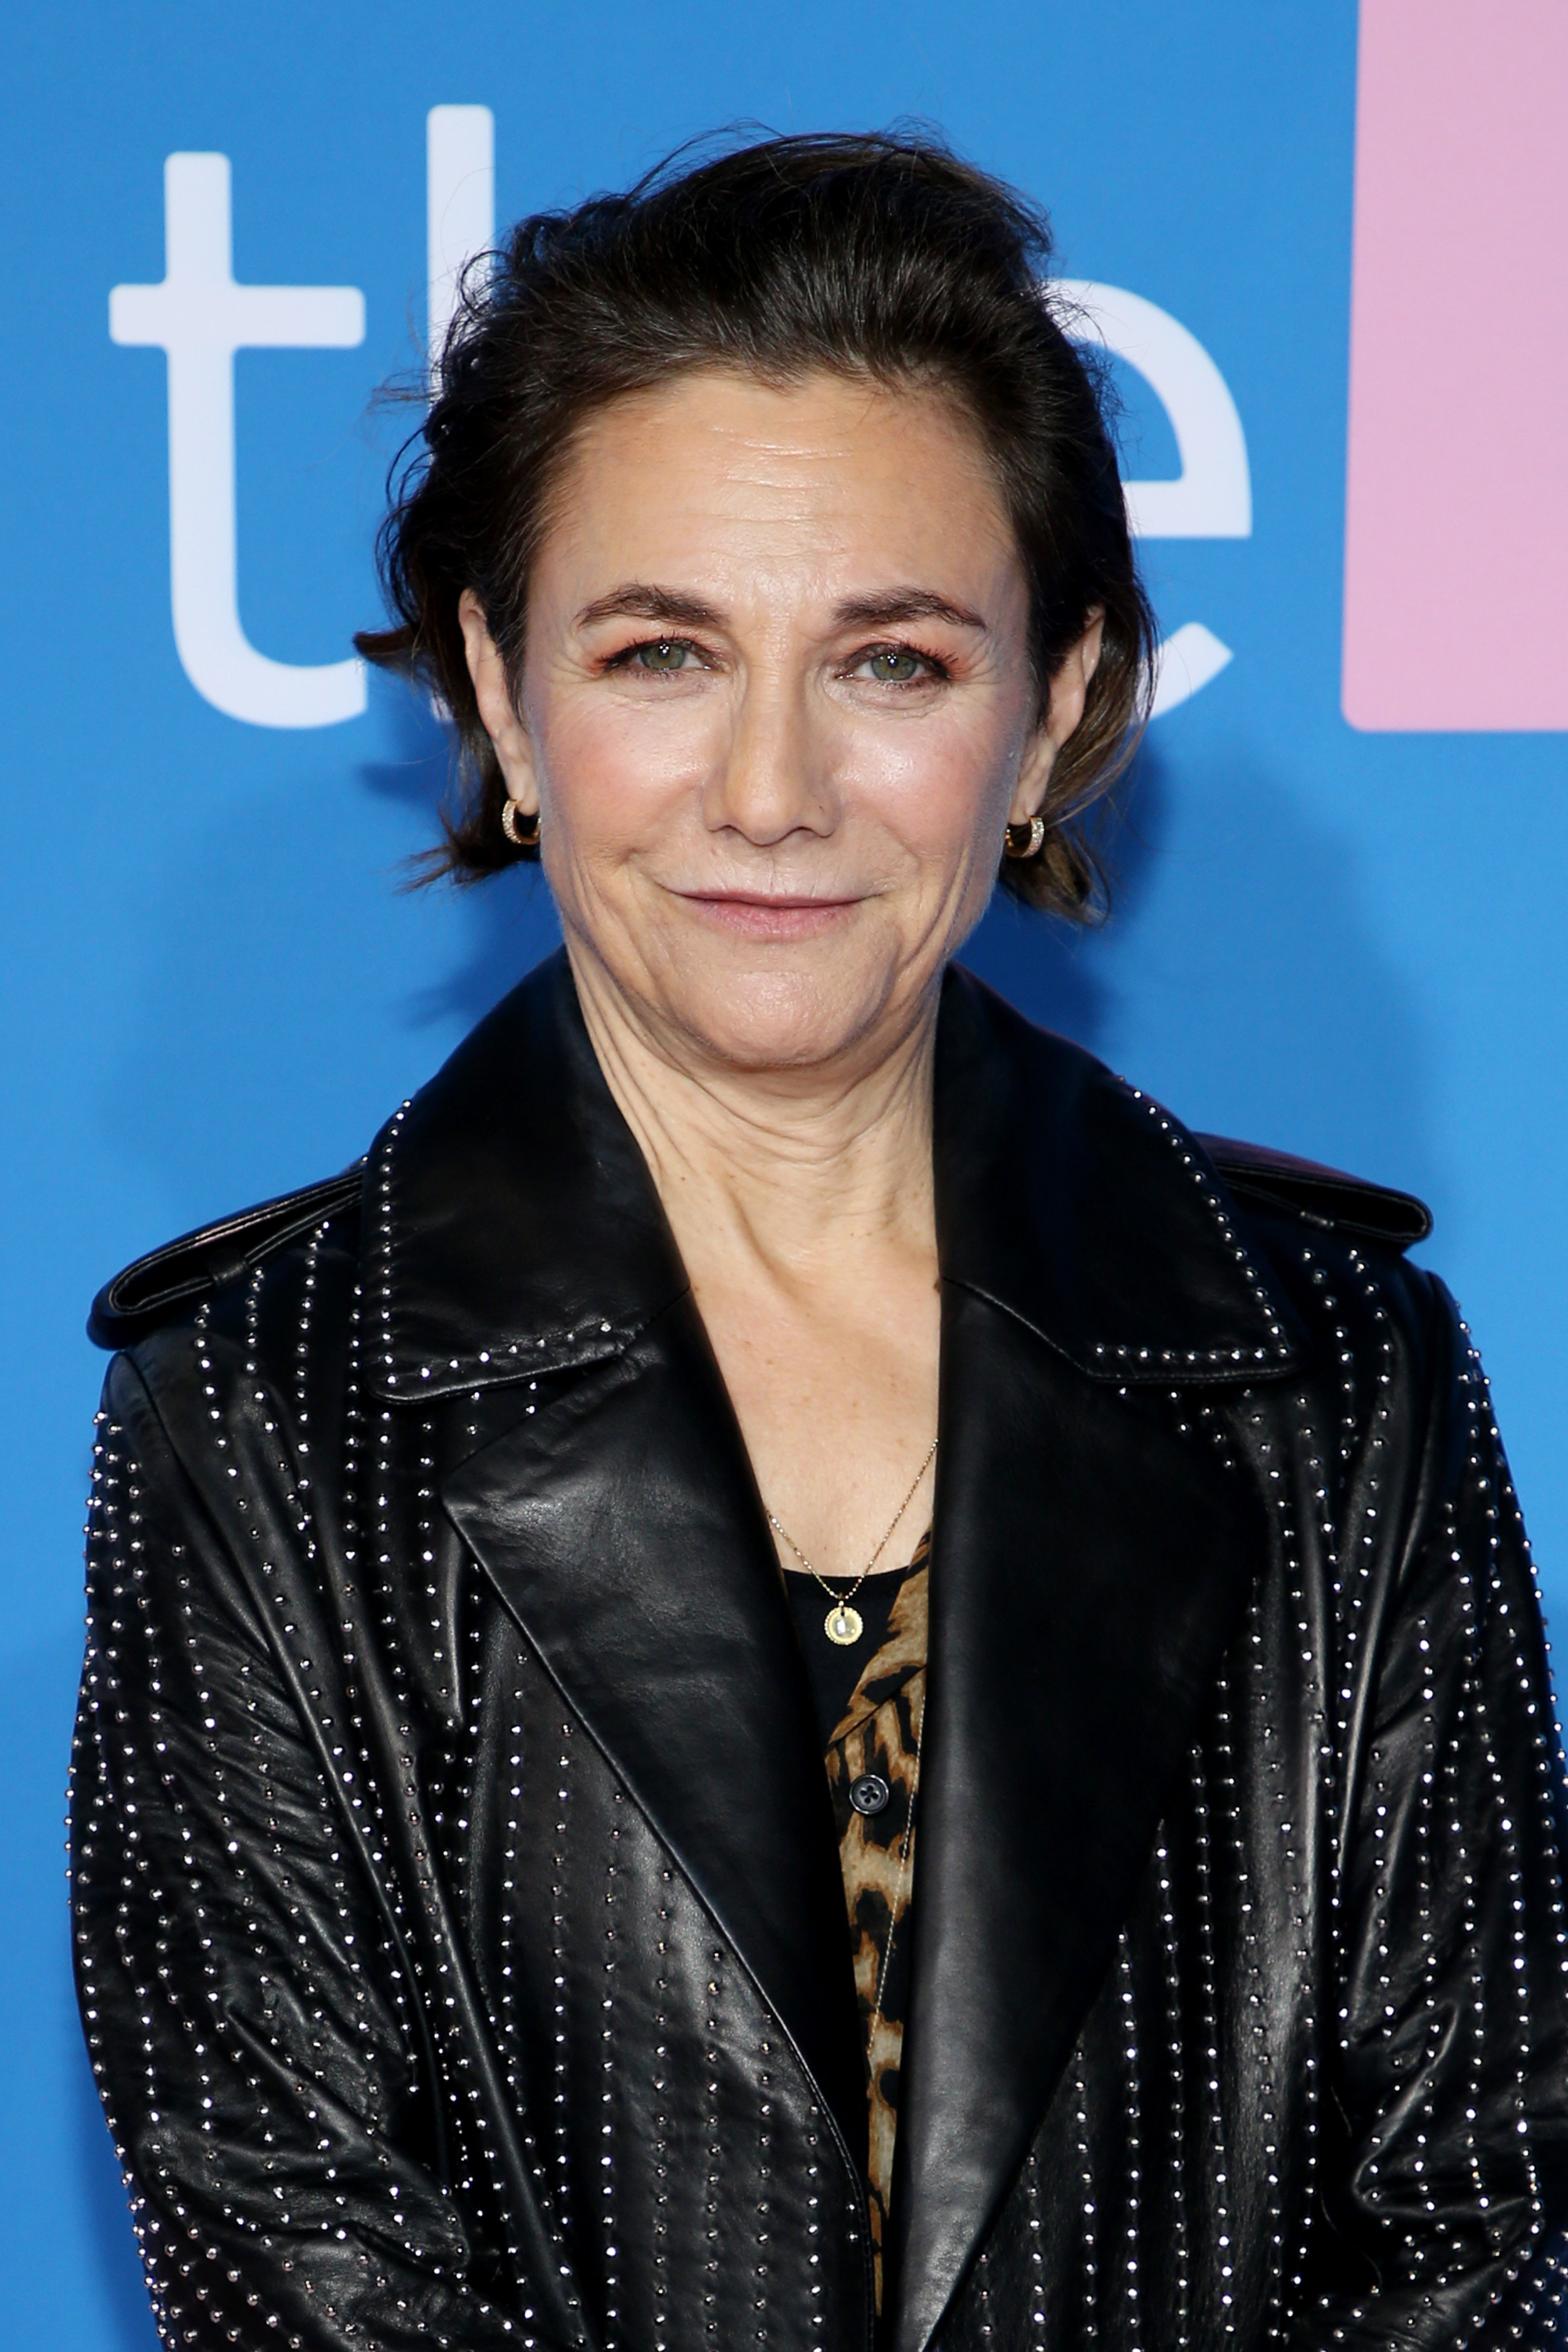 """Ilene Chaiken at the premiere of Showtime's """"The L Word: Generation Q"""" at Regal LA Live on December 02, 2019 in California. 